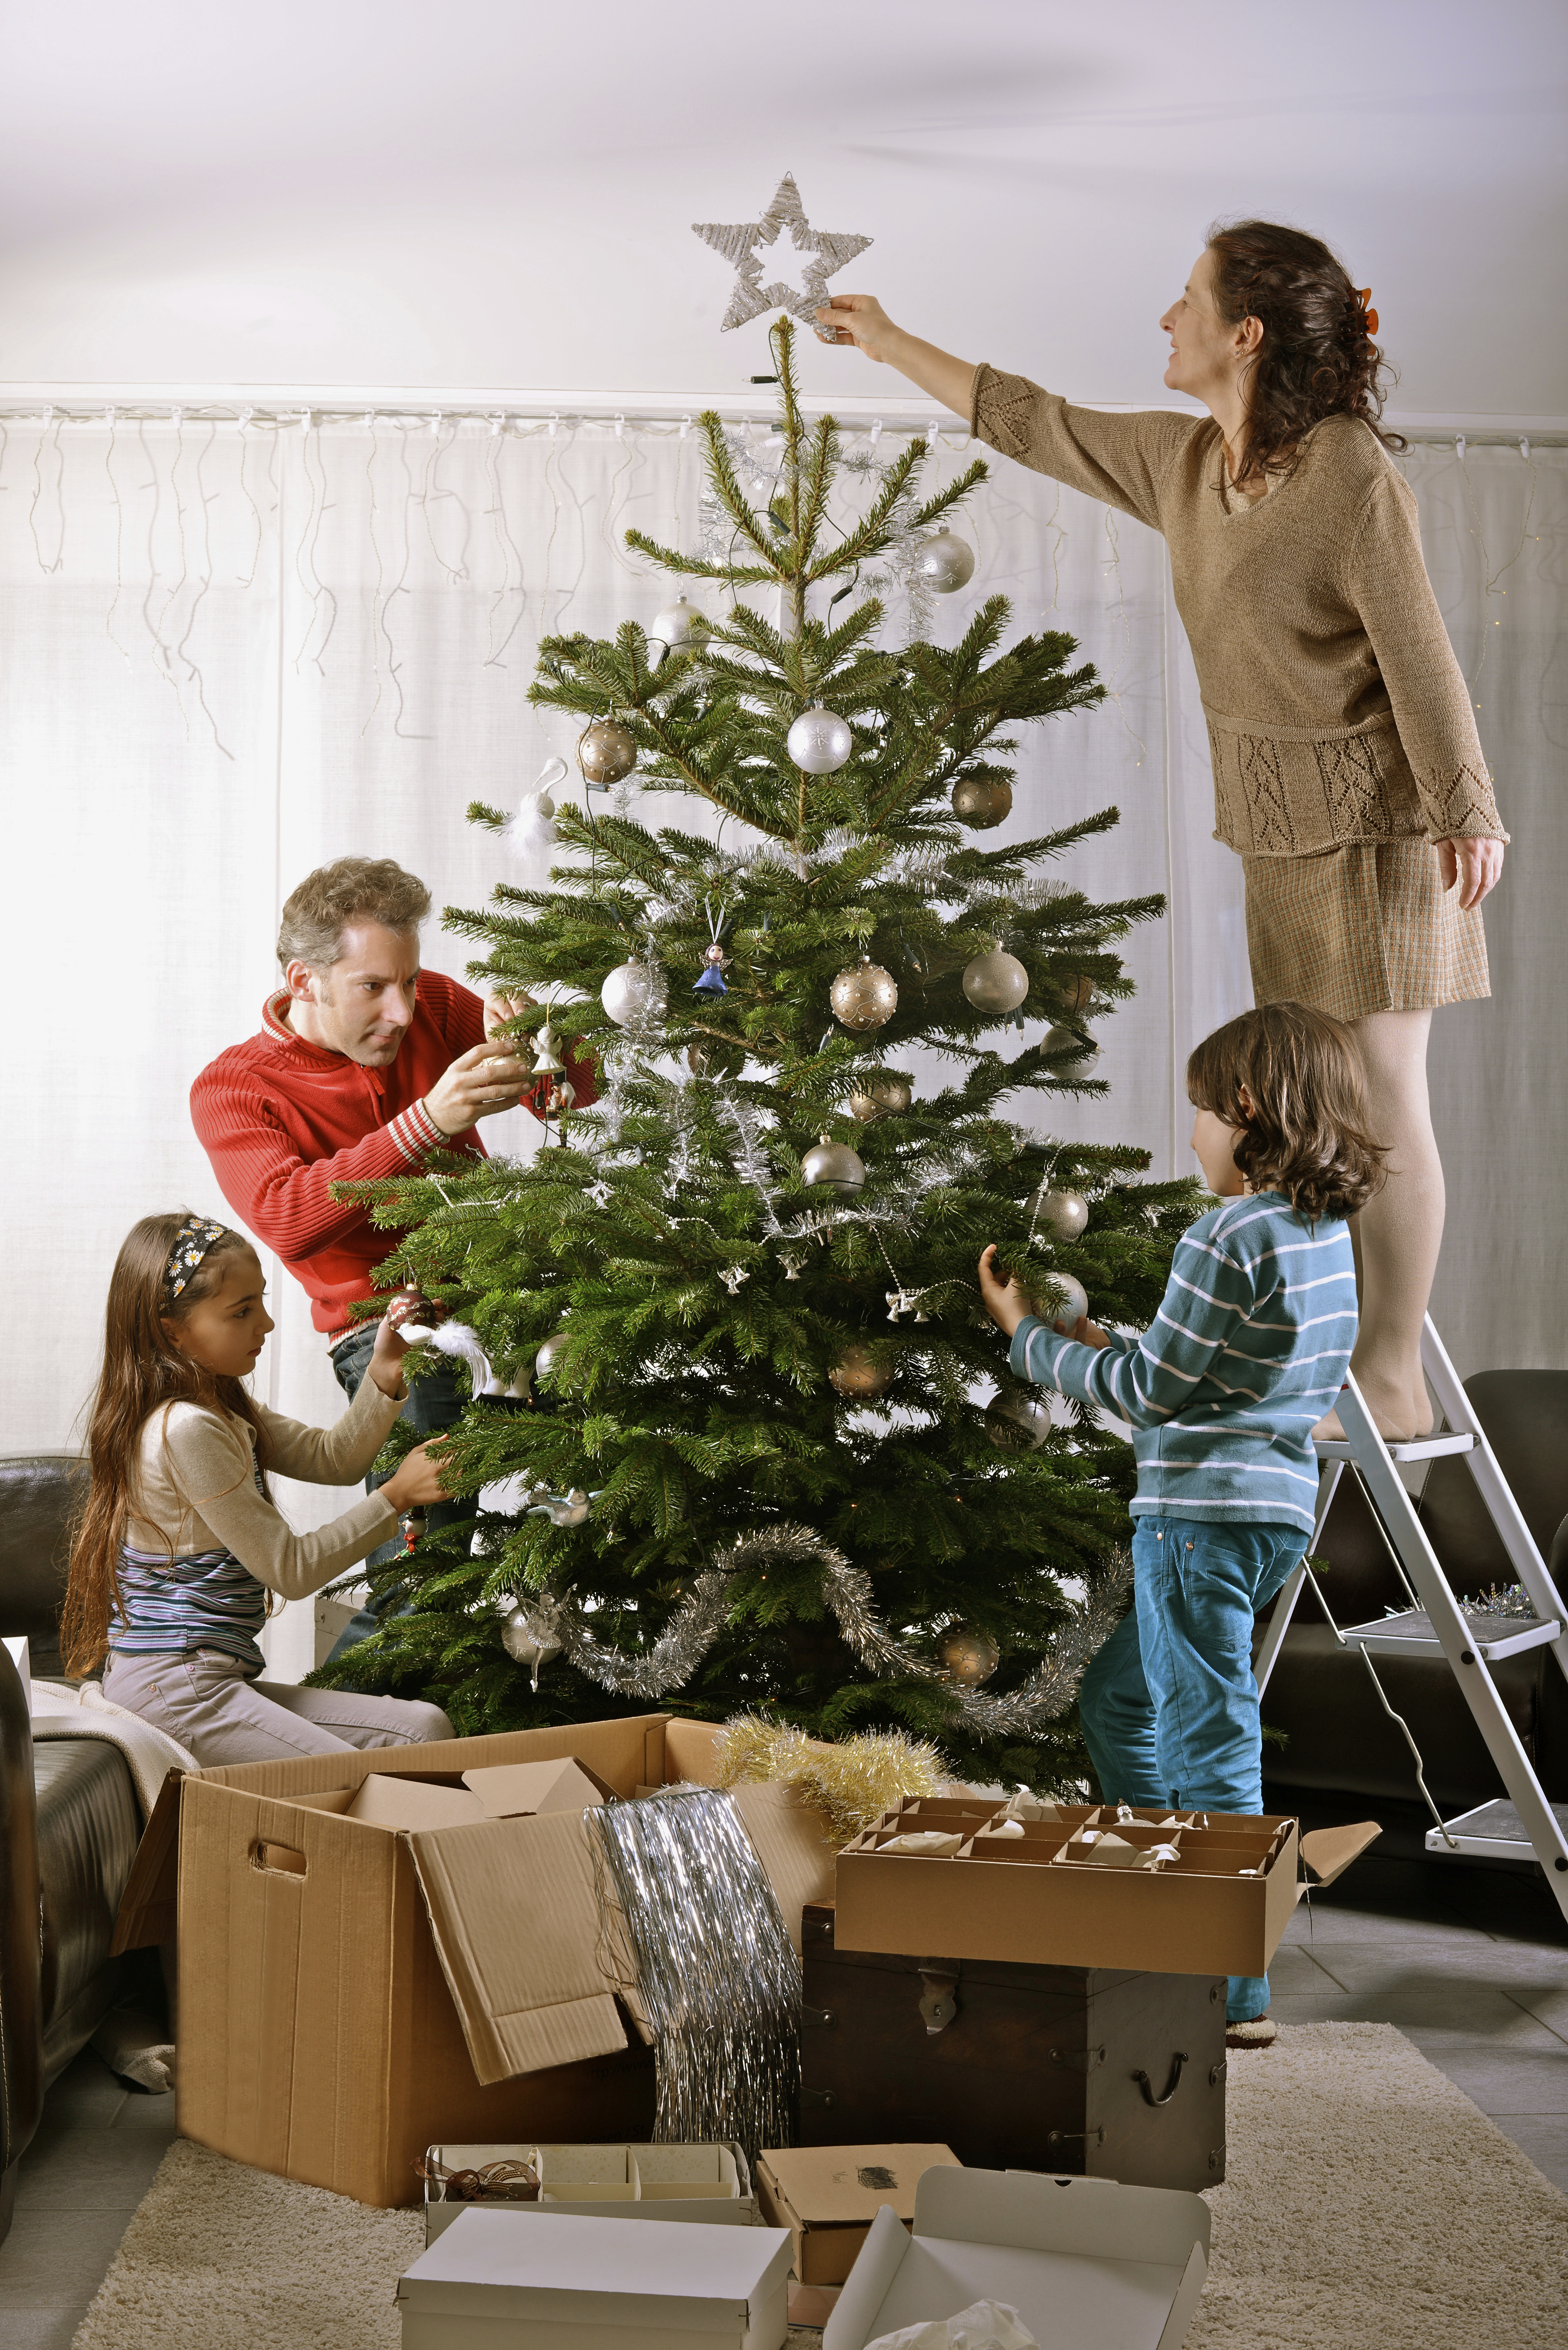 Starting preparations early can help make the festive period less stressful